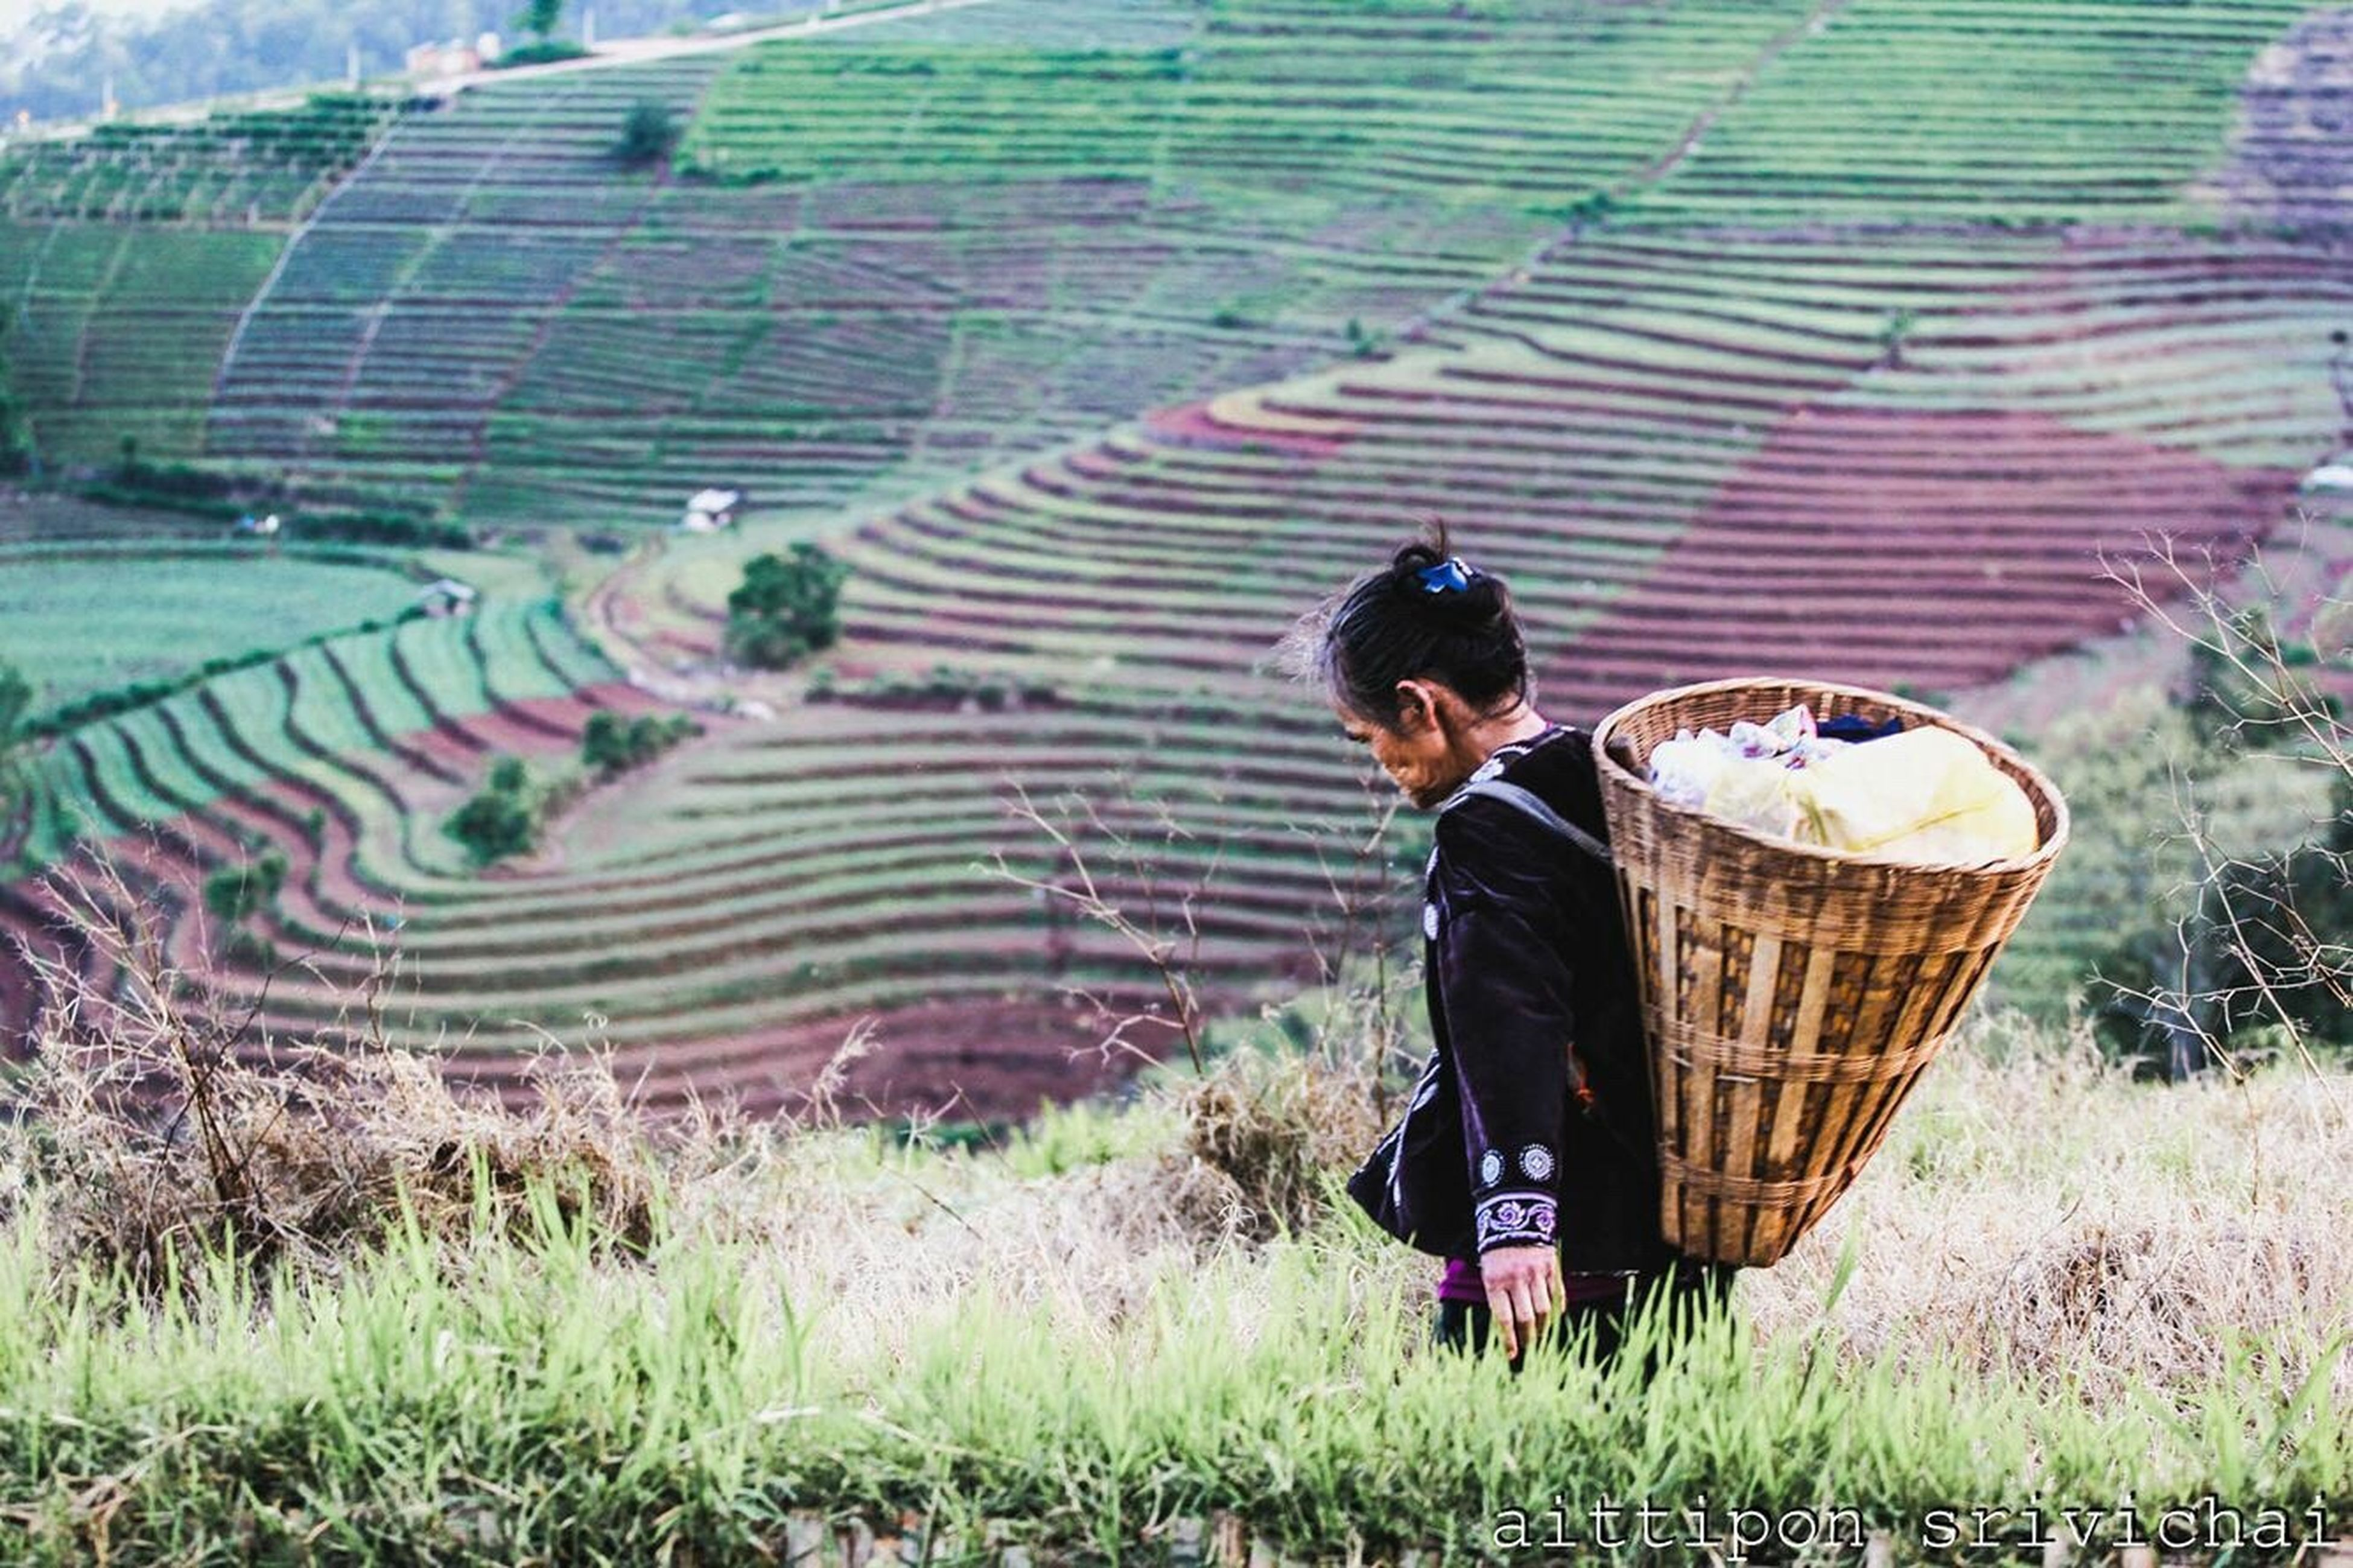 basket, real people, field, outdoors, one person, full length, day, nature, adult, people, adults only